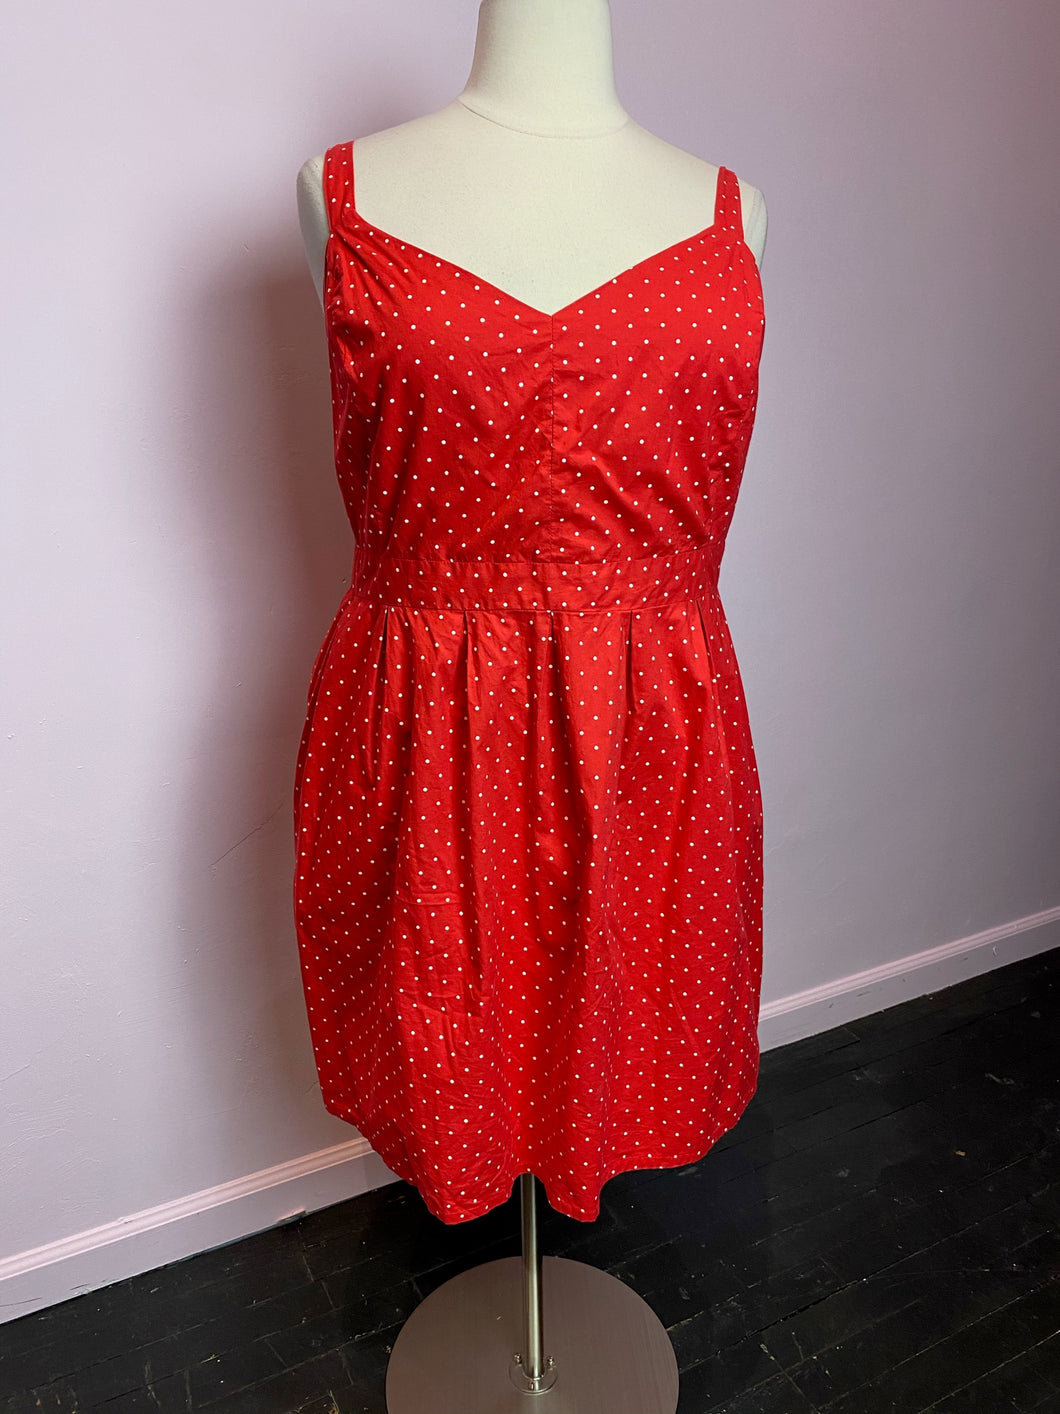 Red with Mini White Polka Dots Dress by Joe Brown's, Size 3X/4X